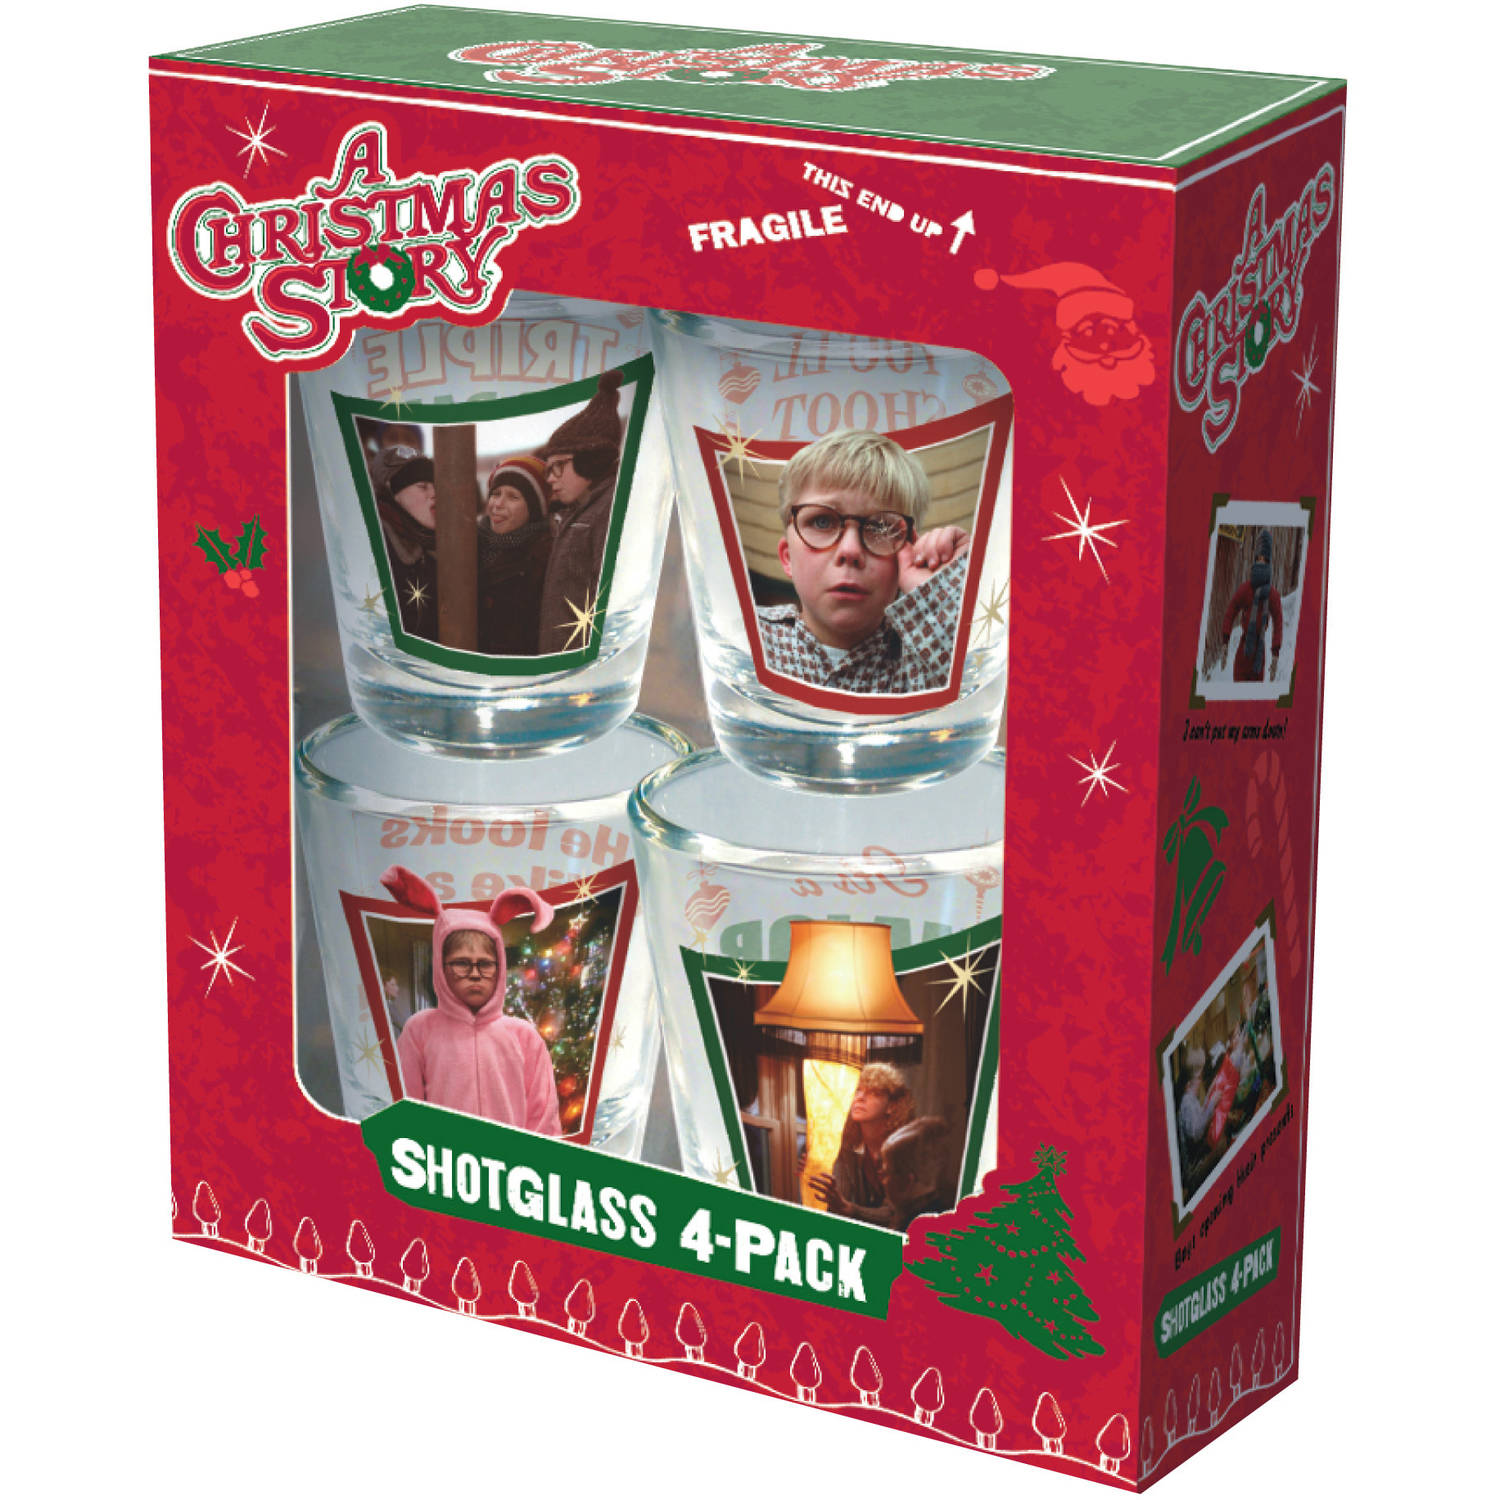 A Christmas Story Full Color Shot Glass 4-Pack by ICUP